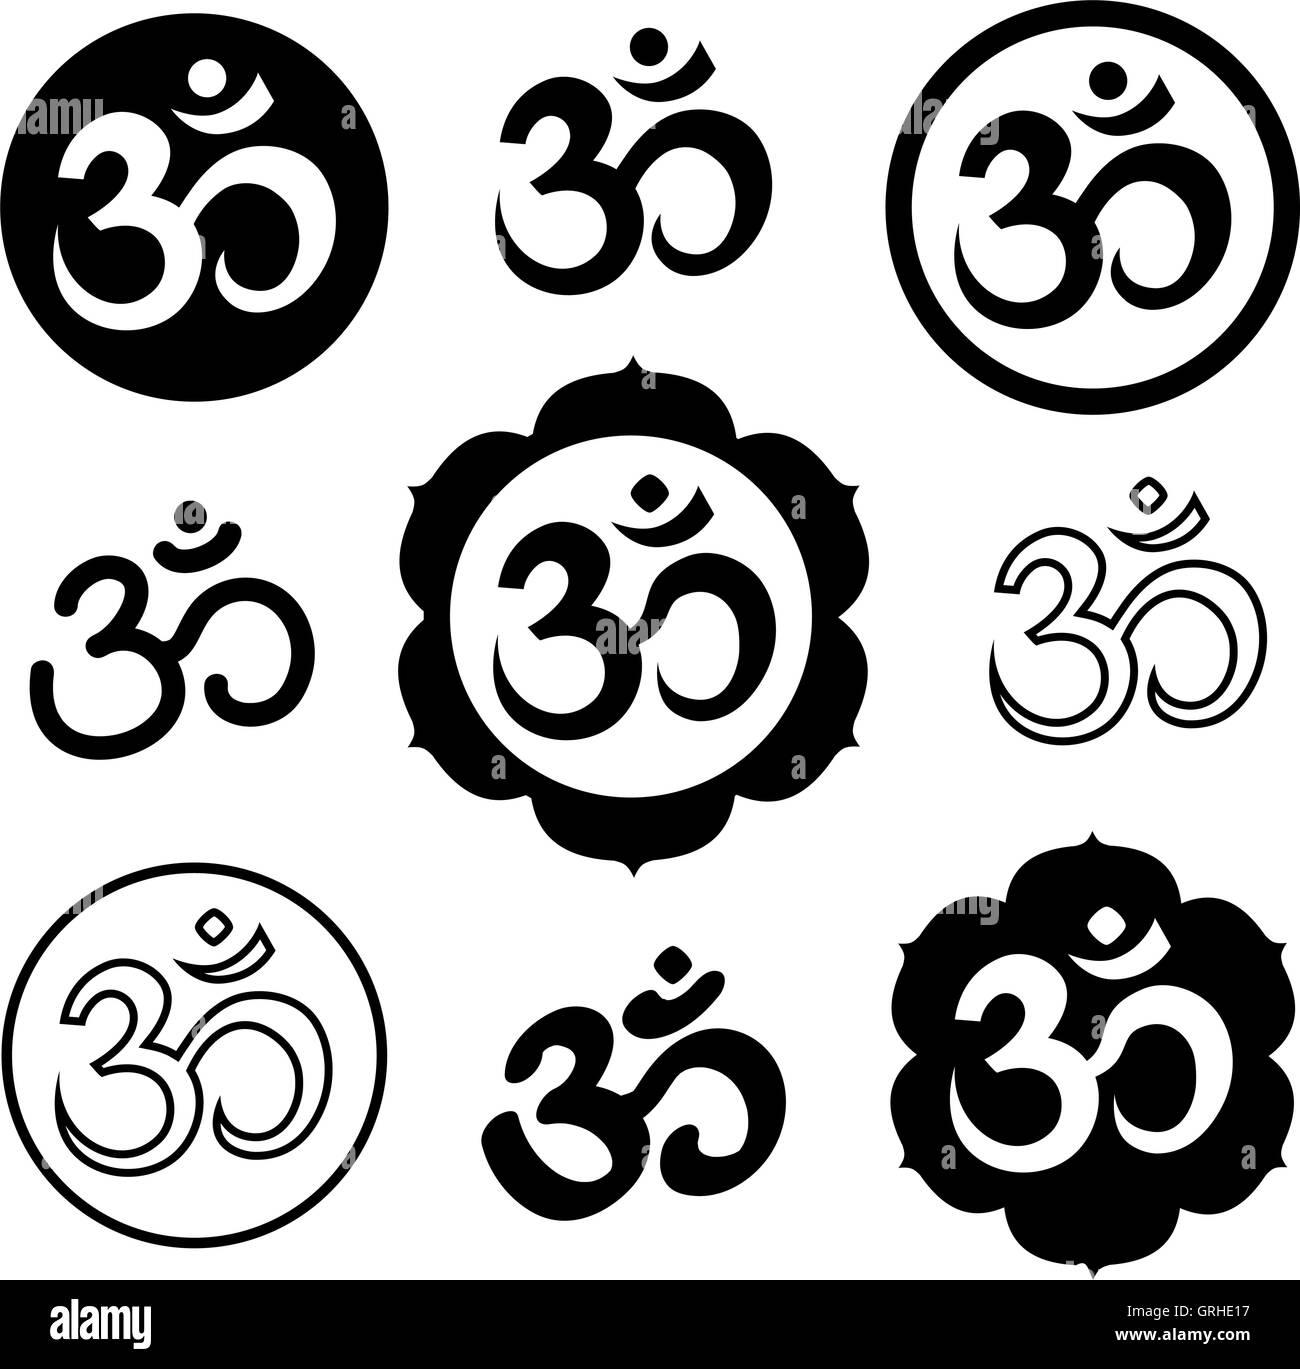 Set of Om, or Aum signs isolated on white background. - Stock Image